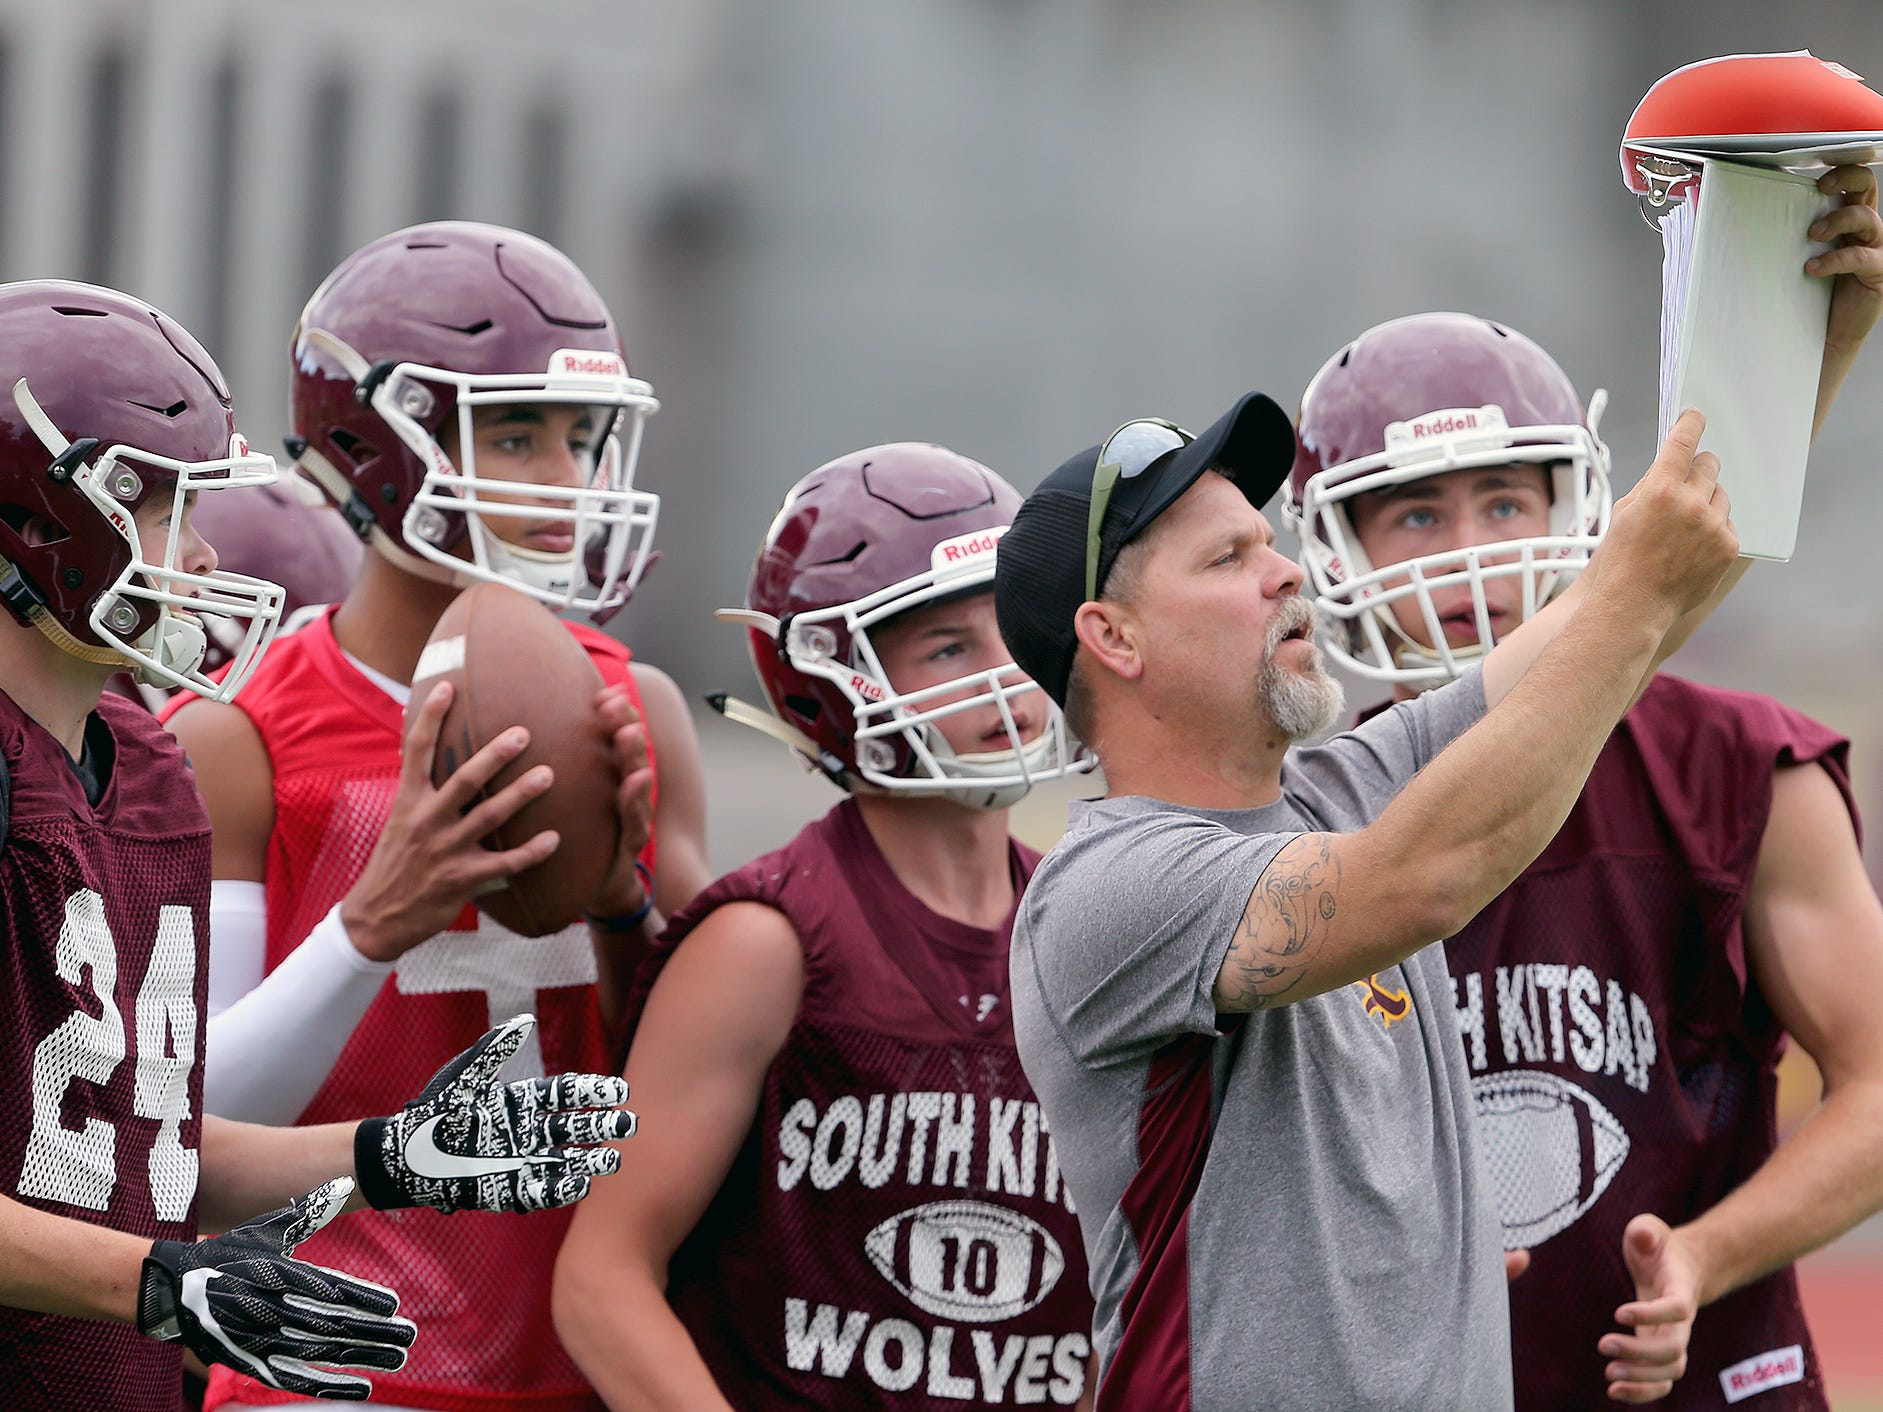 South Kitsap coach Tyler George shows offensive plays during the 7 on 7 football at South Kitsap High School in Port Orchard on Wednesday, July 18, 2018.